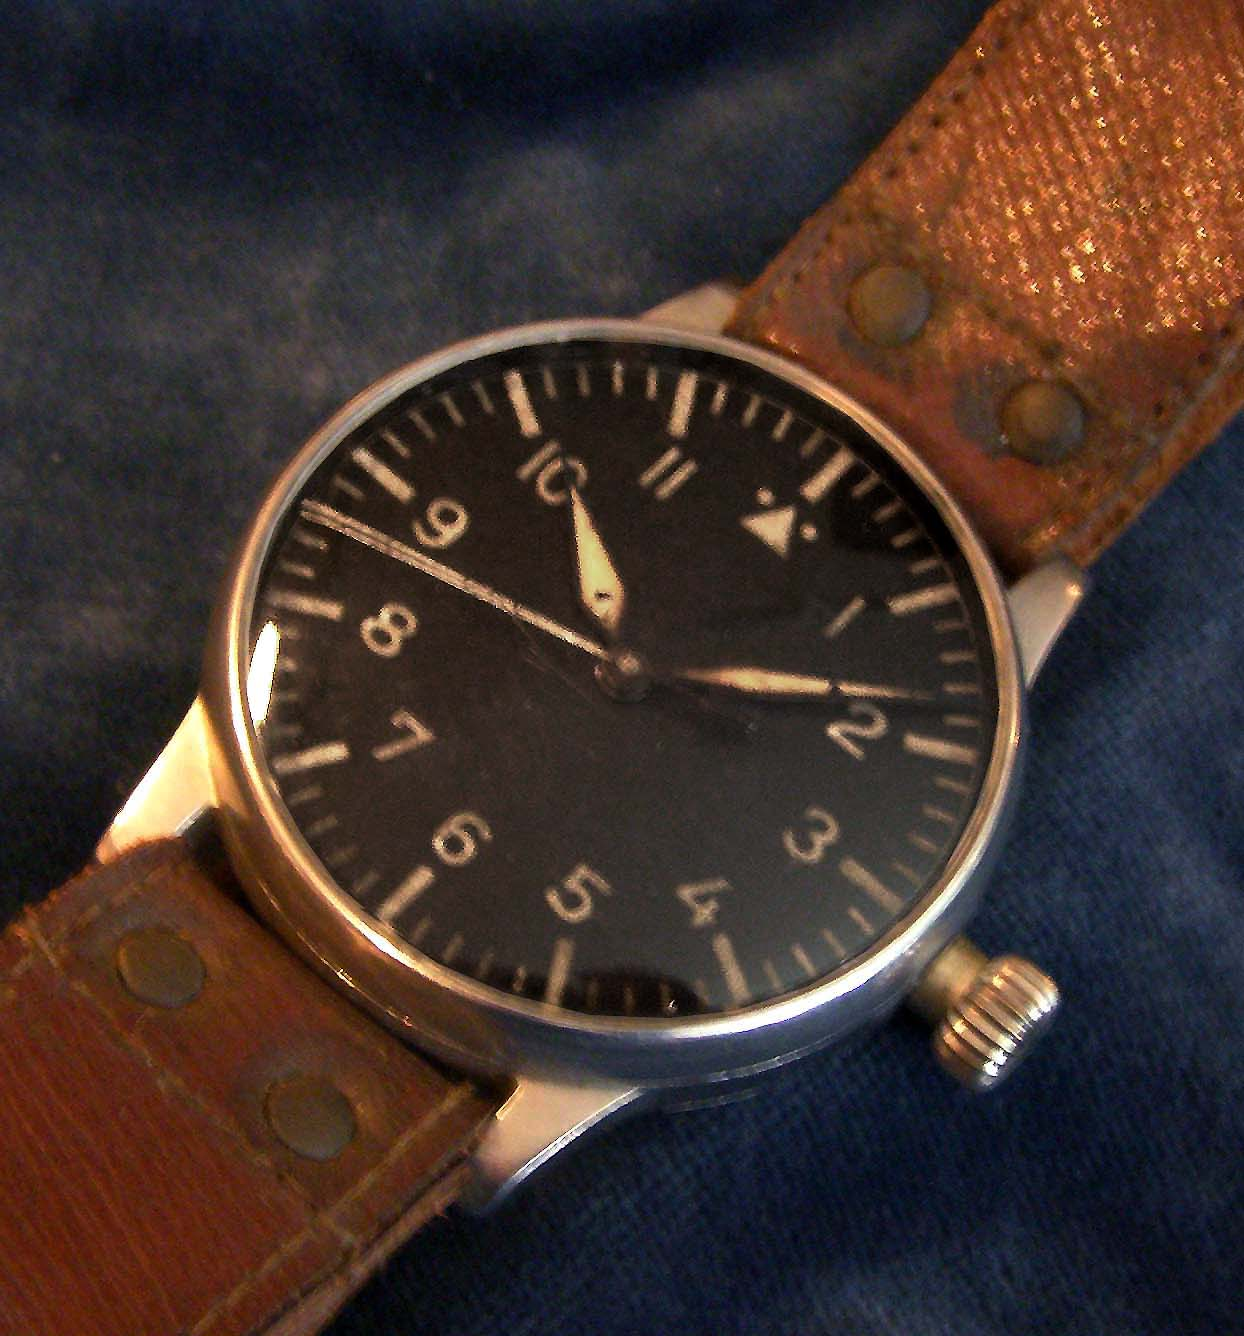 Luftwaffe Observer Watch By Lange & Söhne. Original Strap. Earliest known.